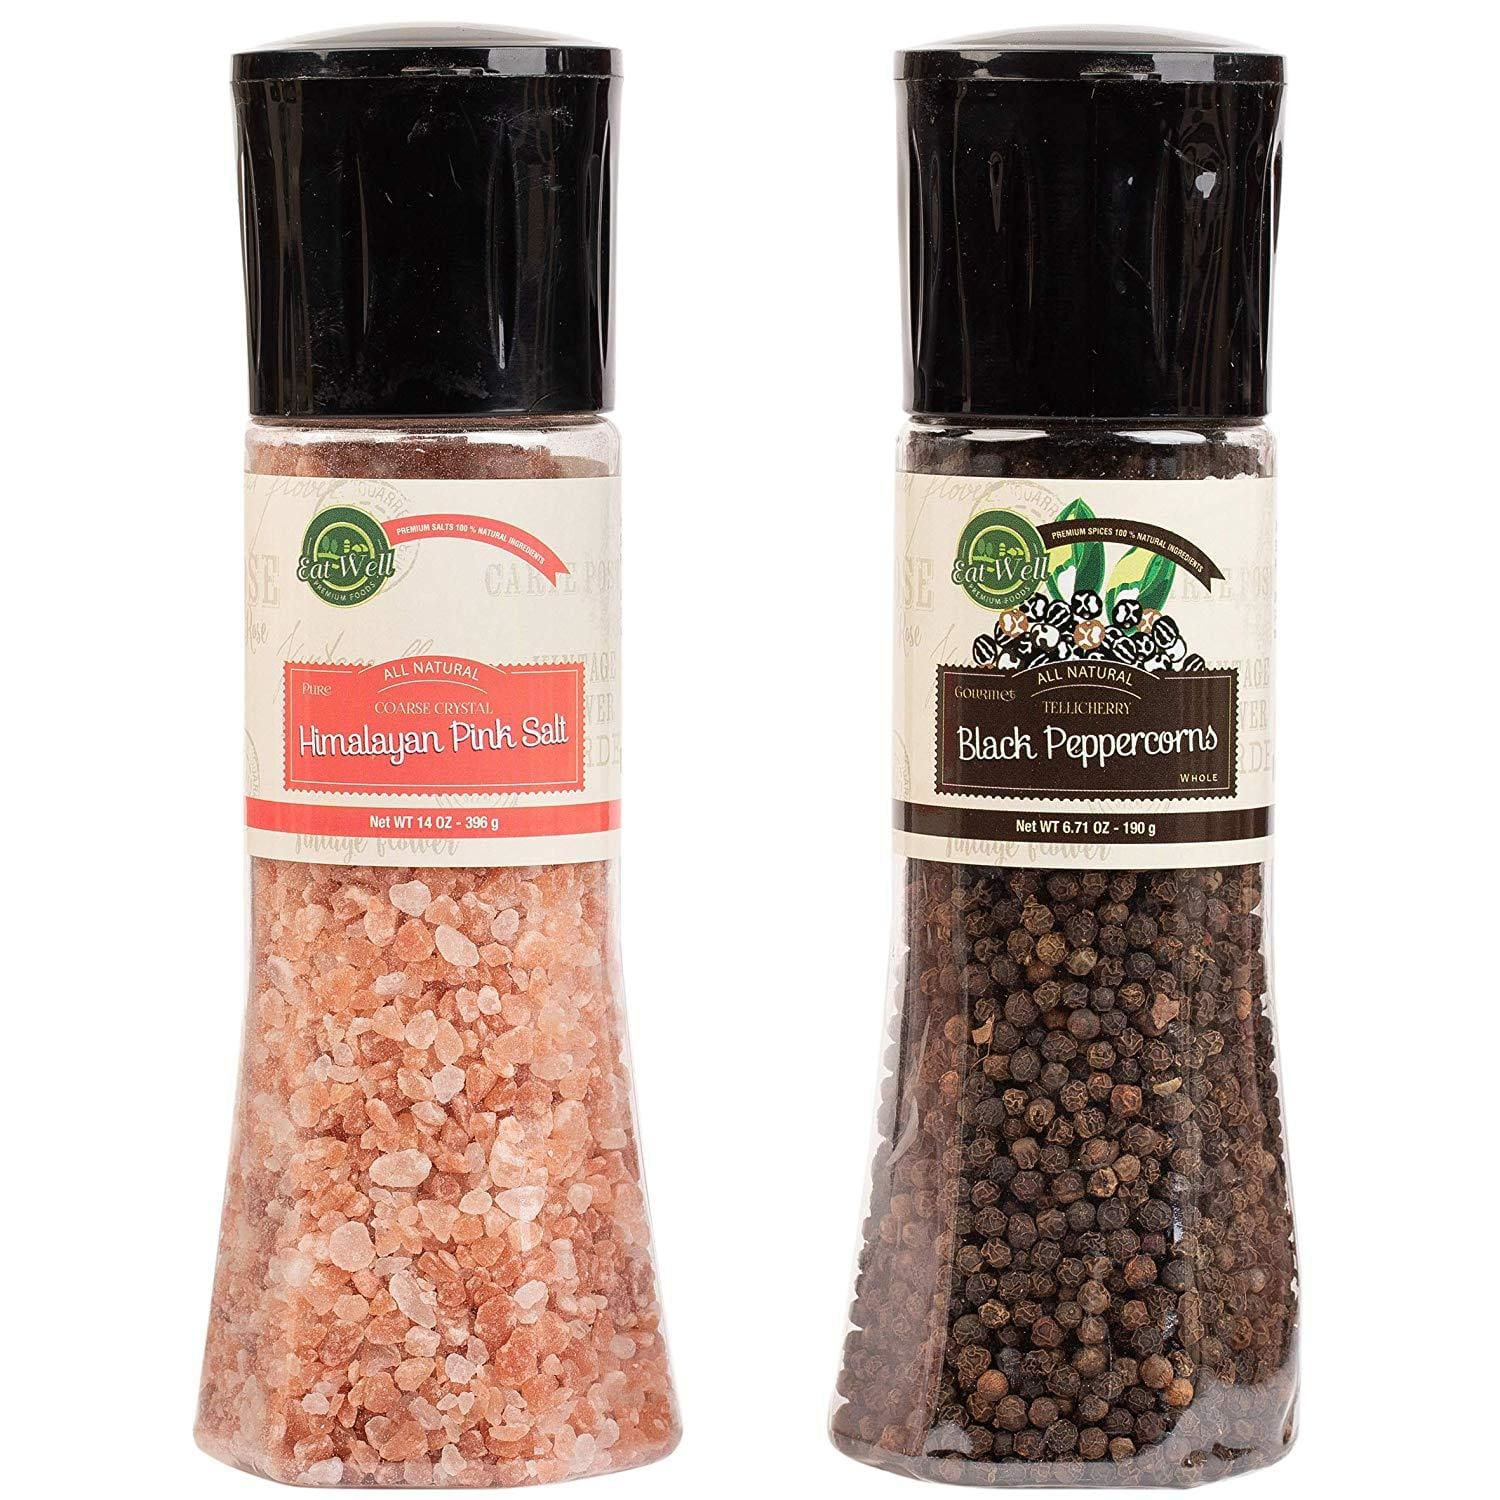 Black Peppercorns Grinder (6.5 oz /185 g ) - Pink Himalayan Salt Grinder ( 13.8 oz /390 g)